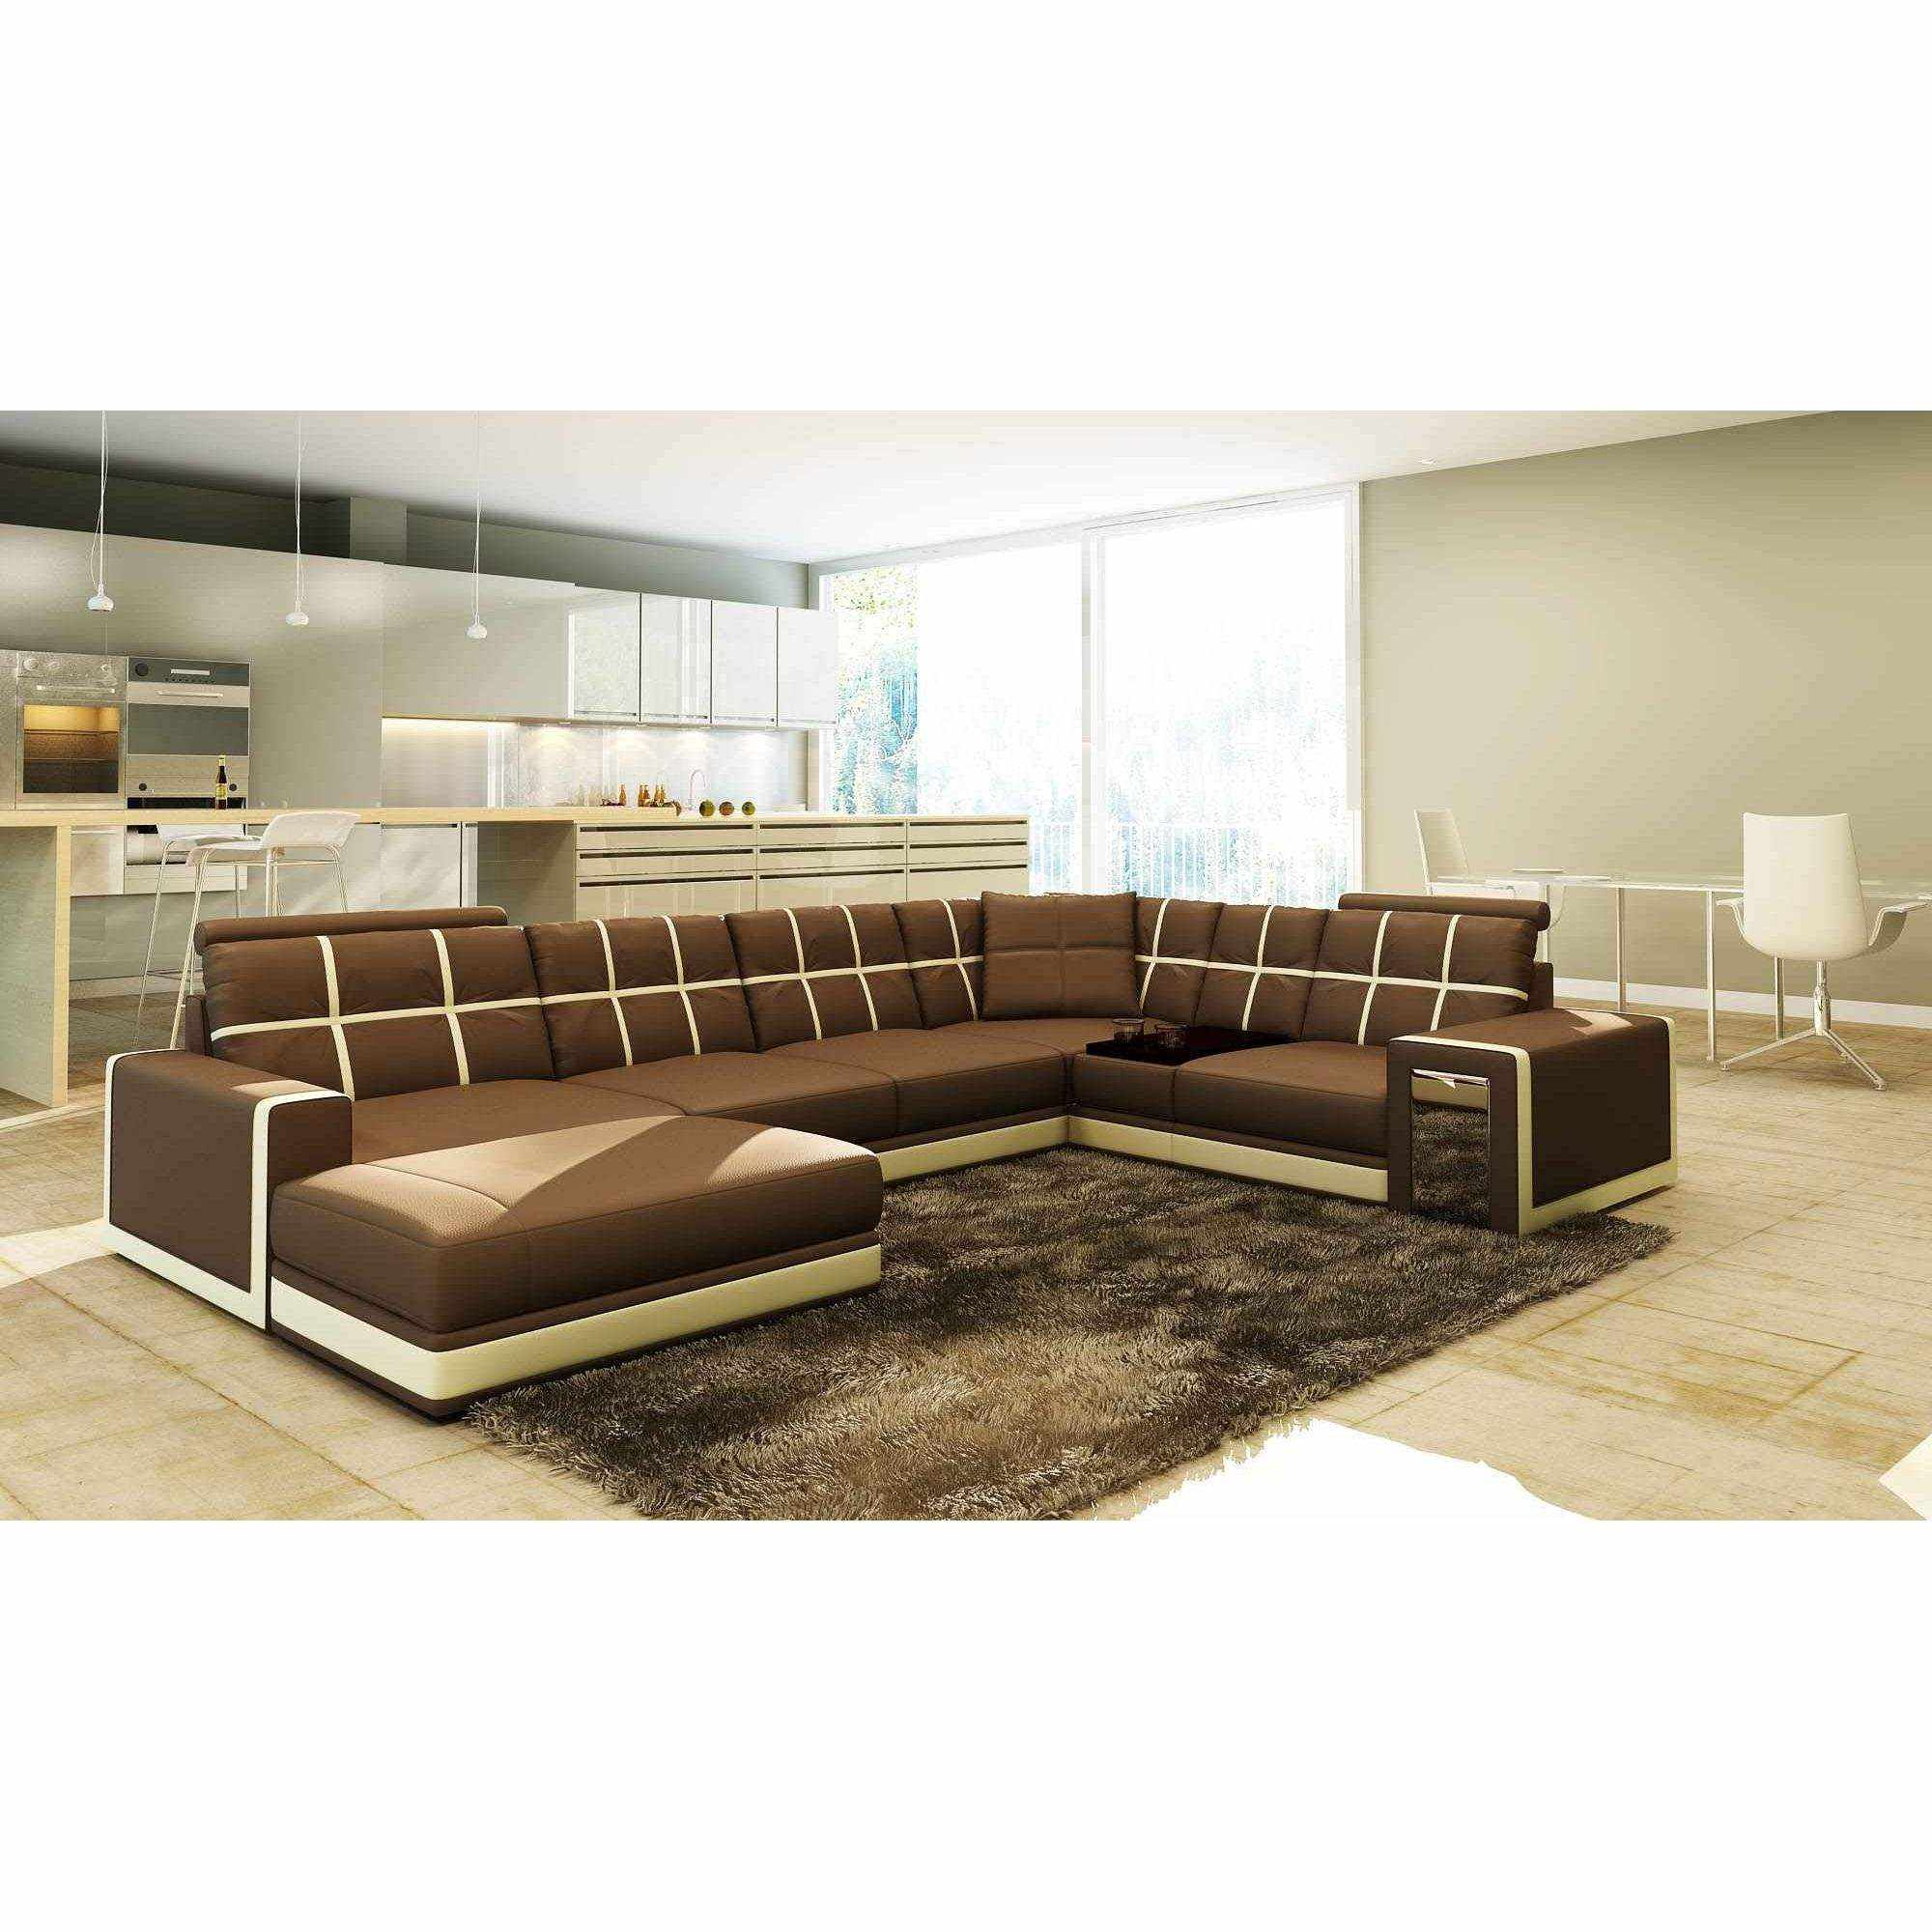 Deco in paris canape d angle panoramique cuir marron et for Salon moderne beige marron